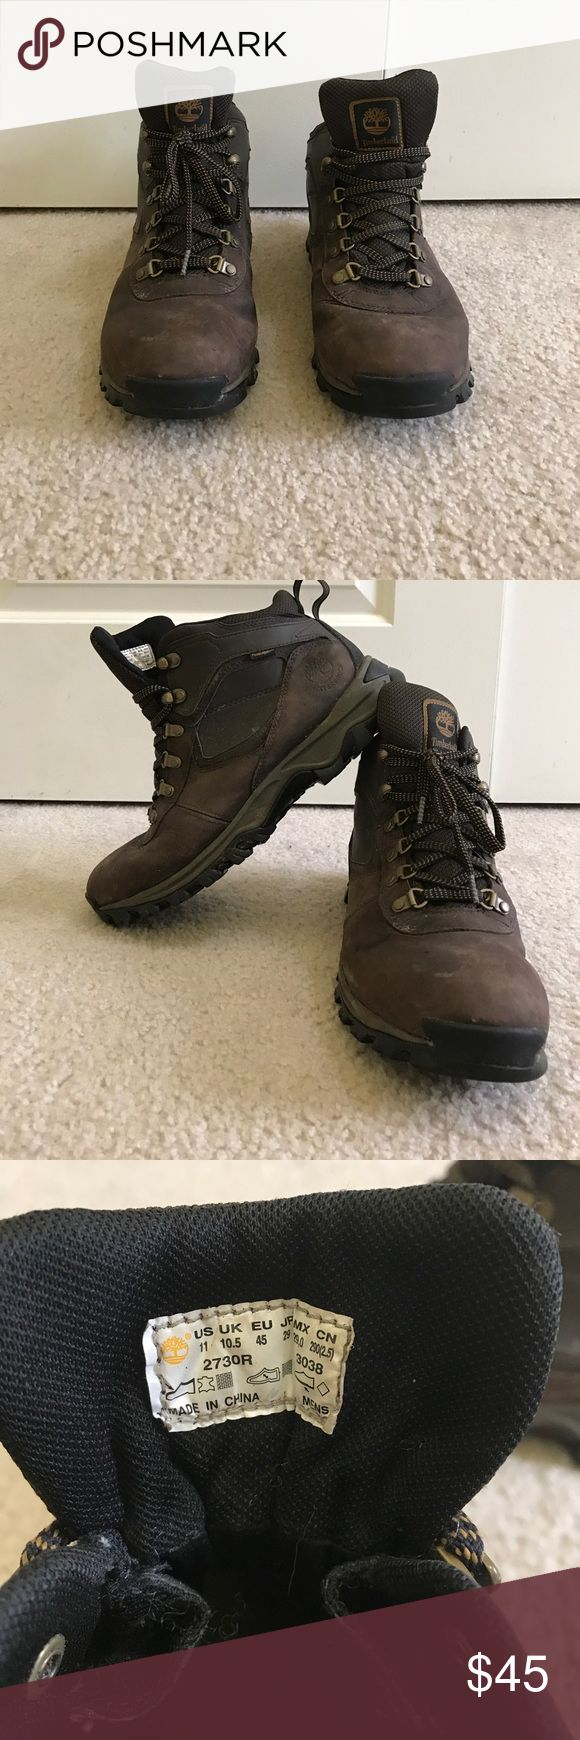 Timberland Men's Hiking Boots Timberland men's size 11 waterproof hiking boots. Incredible for hiking. Worn on one 4 day hiking trip. Very insulating. Great hiking shoes very comfortable. Timberland Shoes Boots